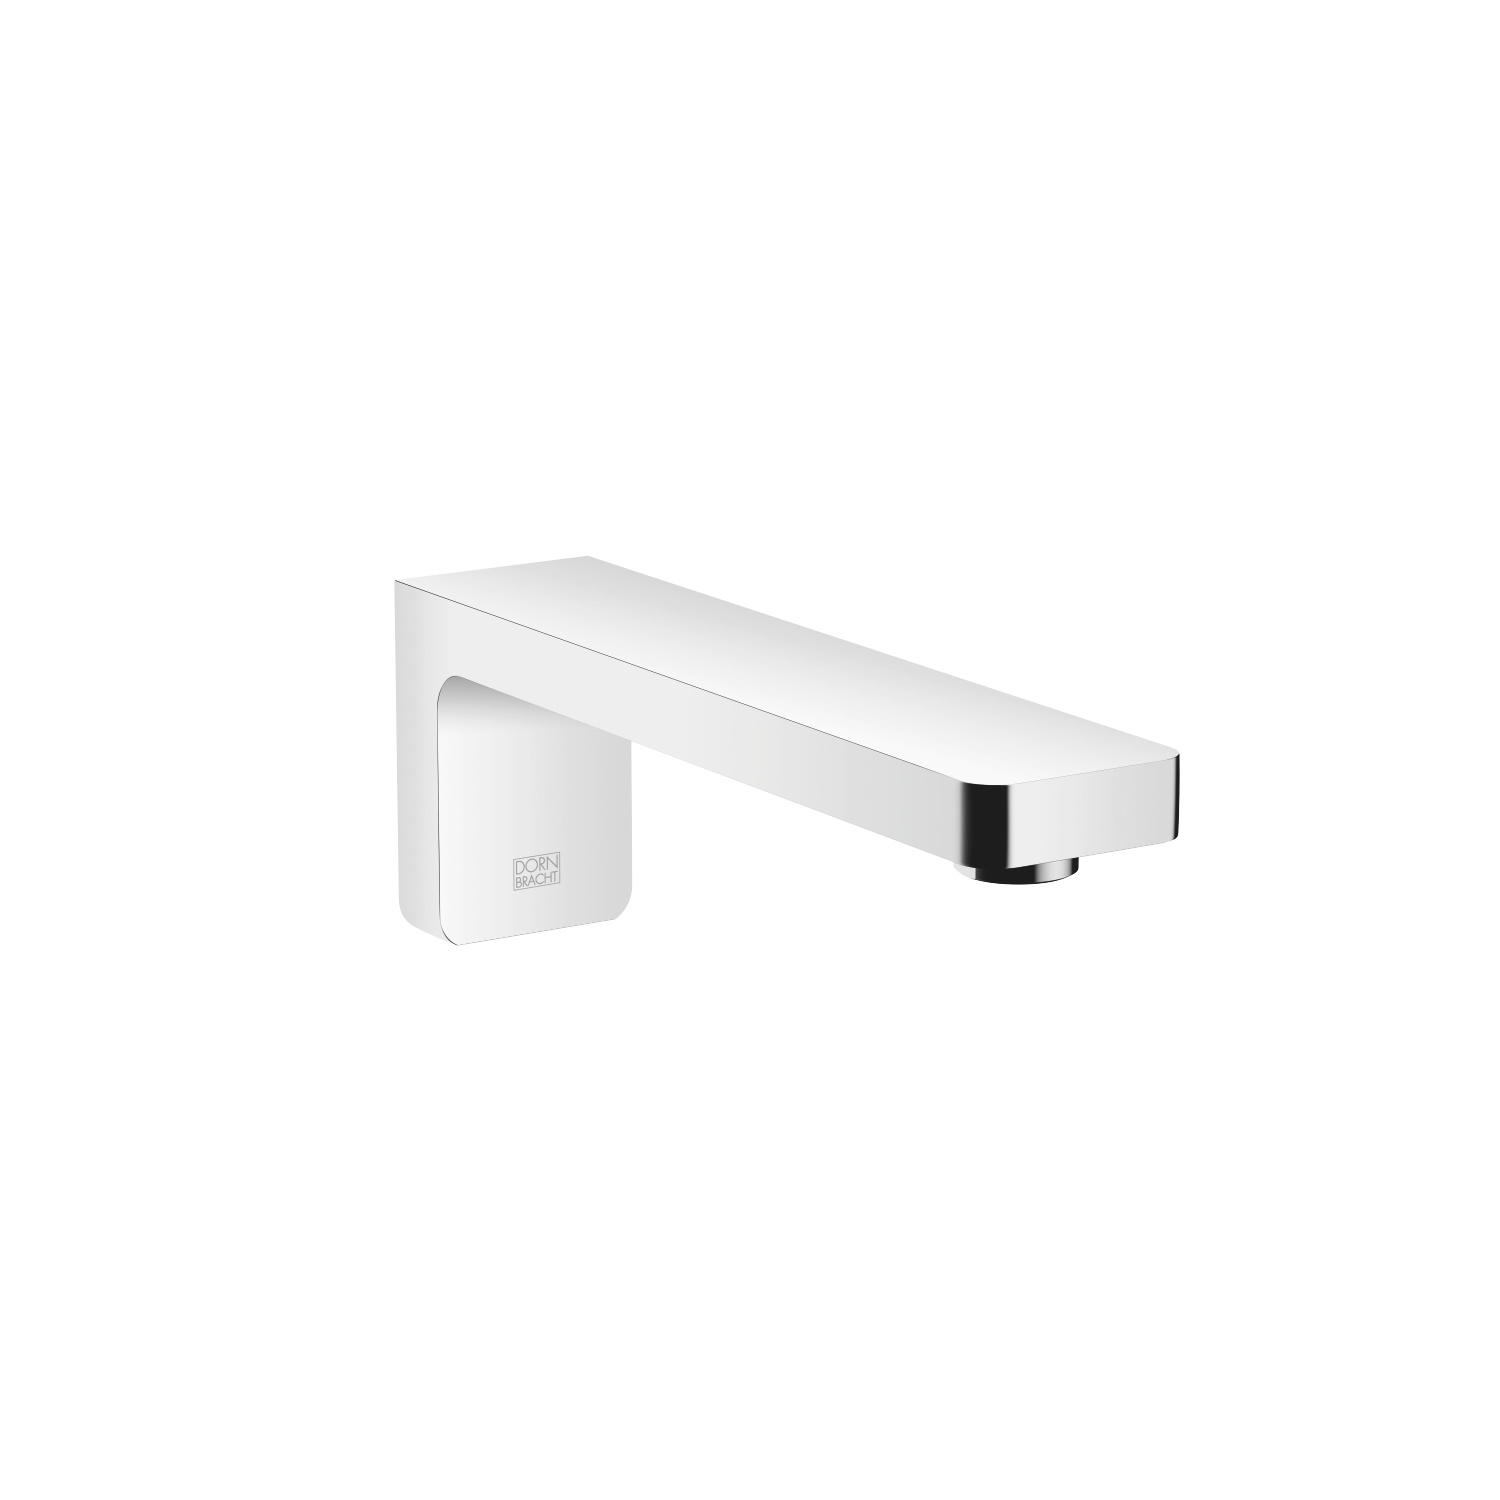 Tub spout for wall-mounted installation - polished chrome 13 801 710-00 Dornbracht